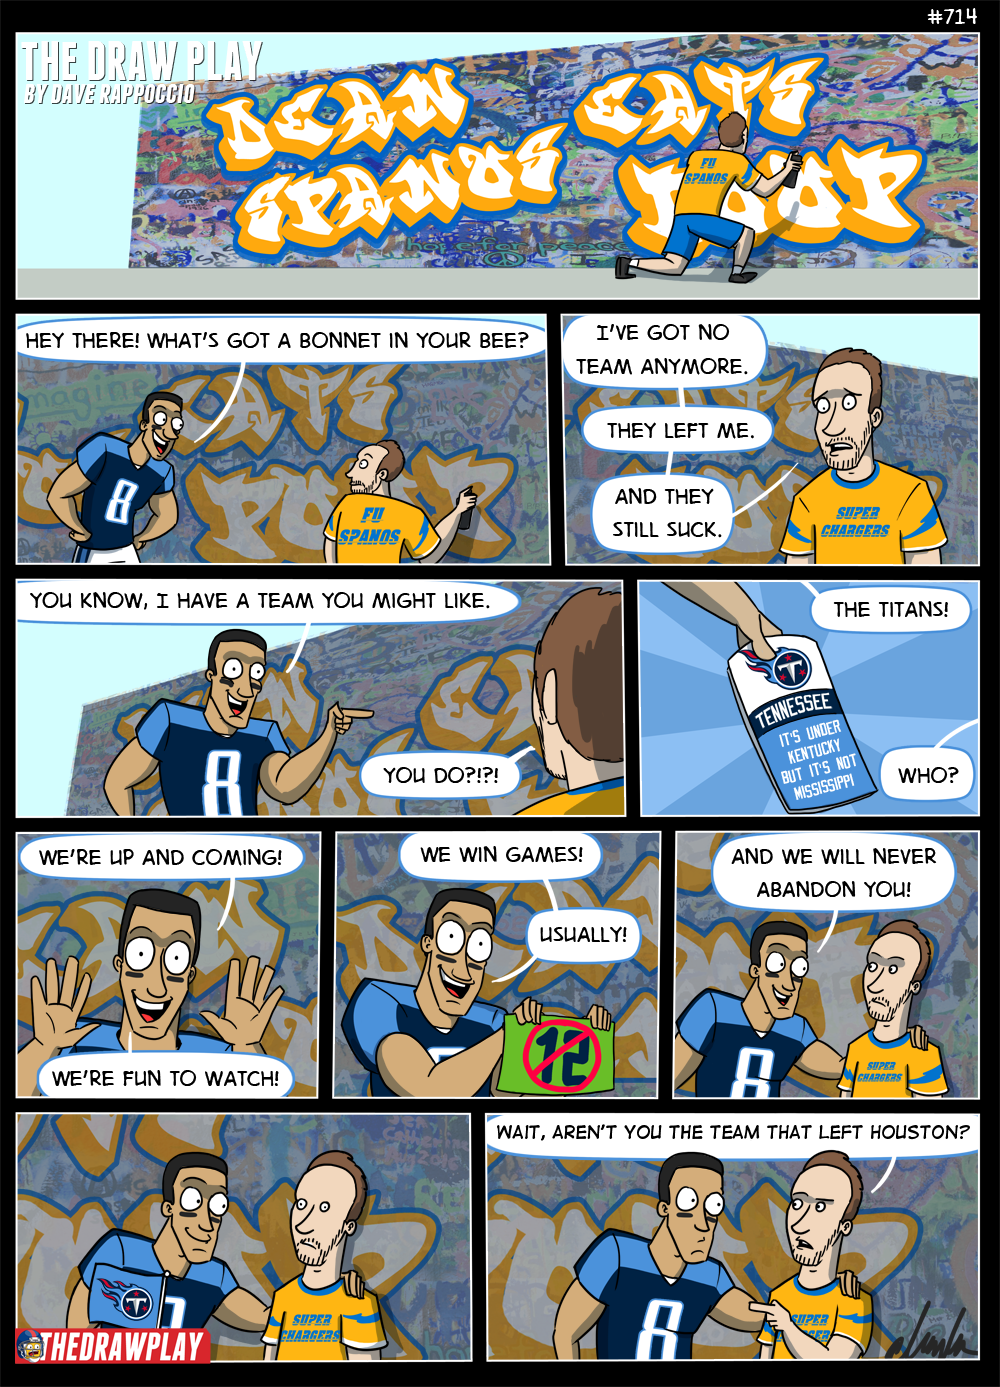 Dean Spanos would eat the poop than move it to a new toilet that already had poop and didn't want Dean's poop, and then Dean would complain that no one wants his poop this metaphor really got away from me